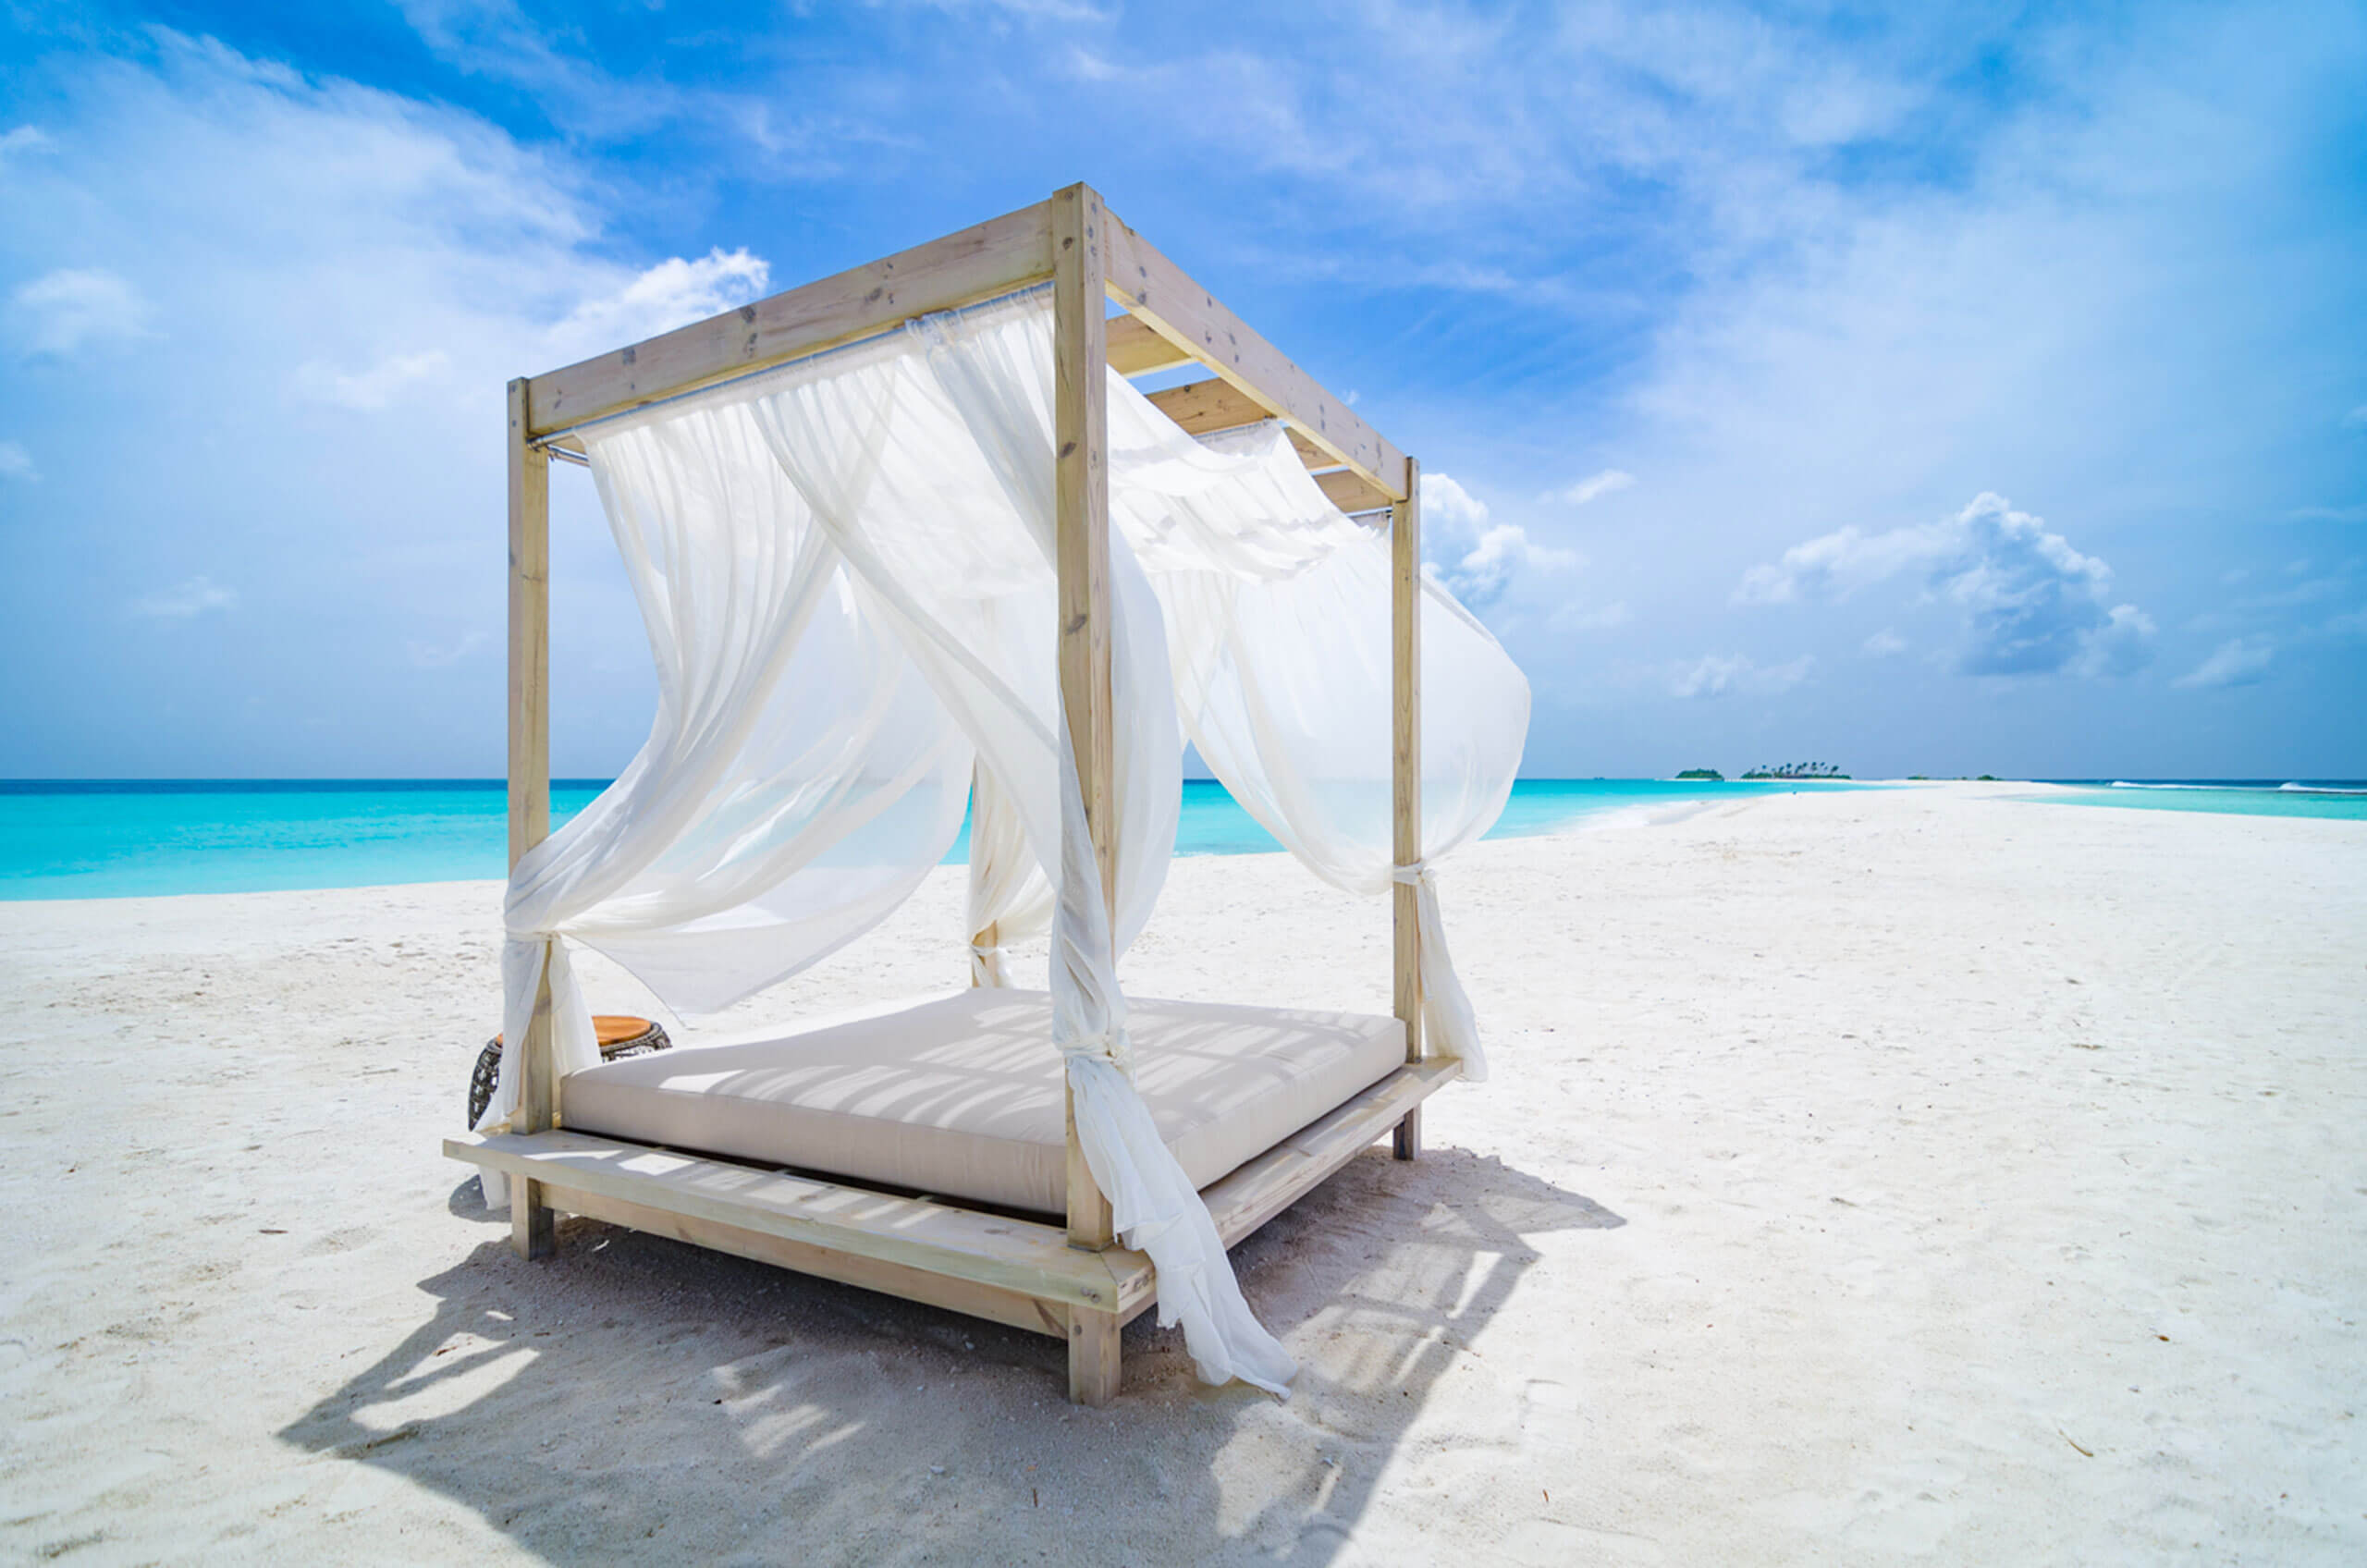 four-poster bed on the sandbank